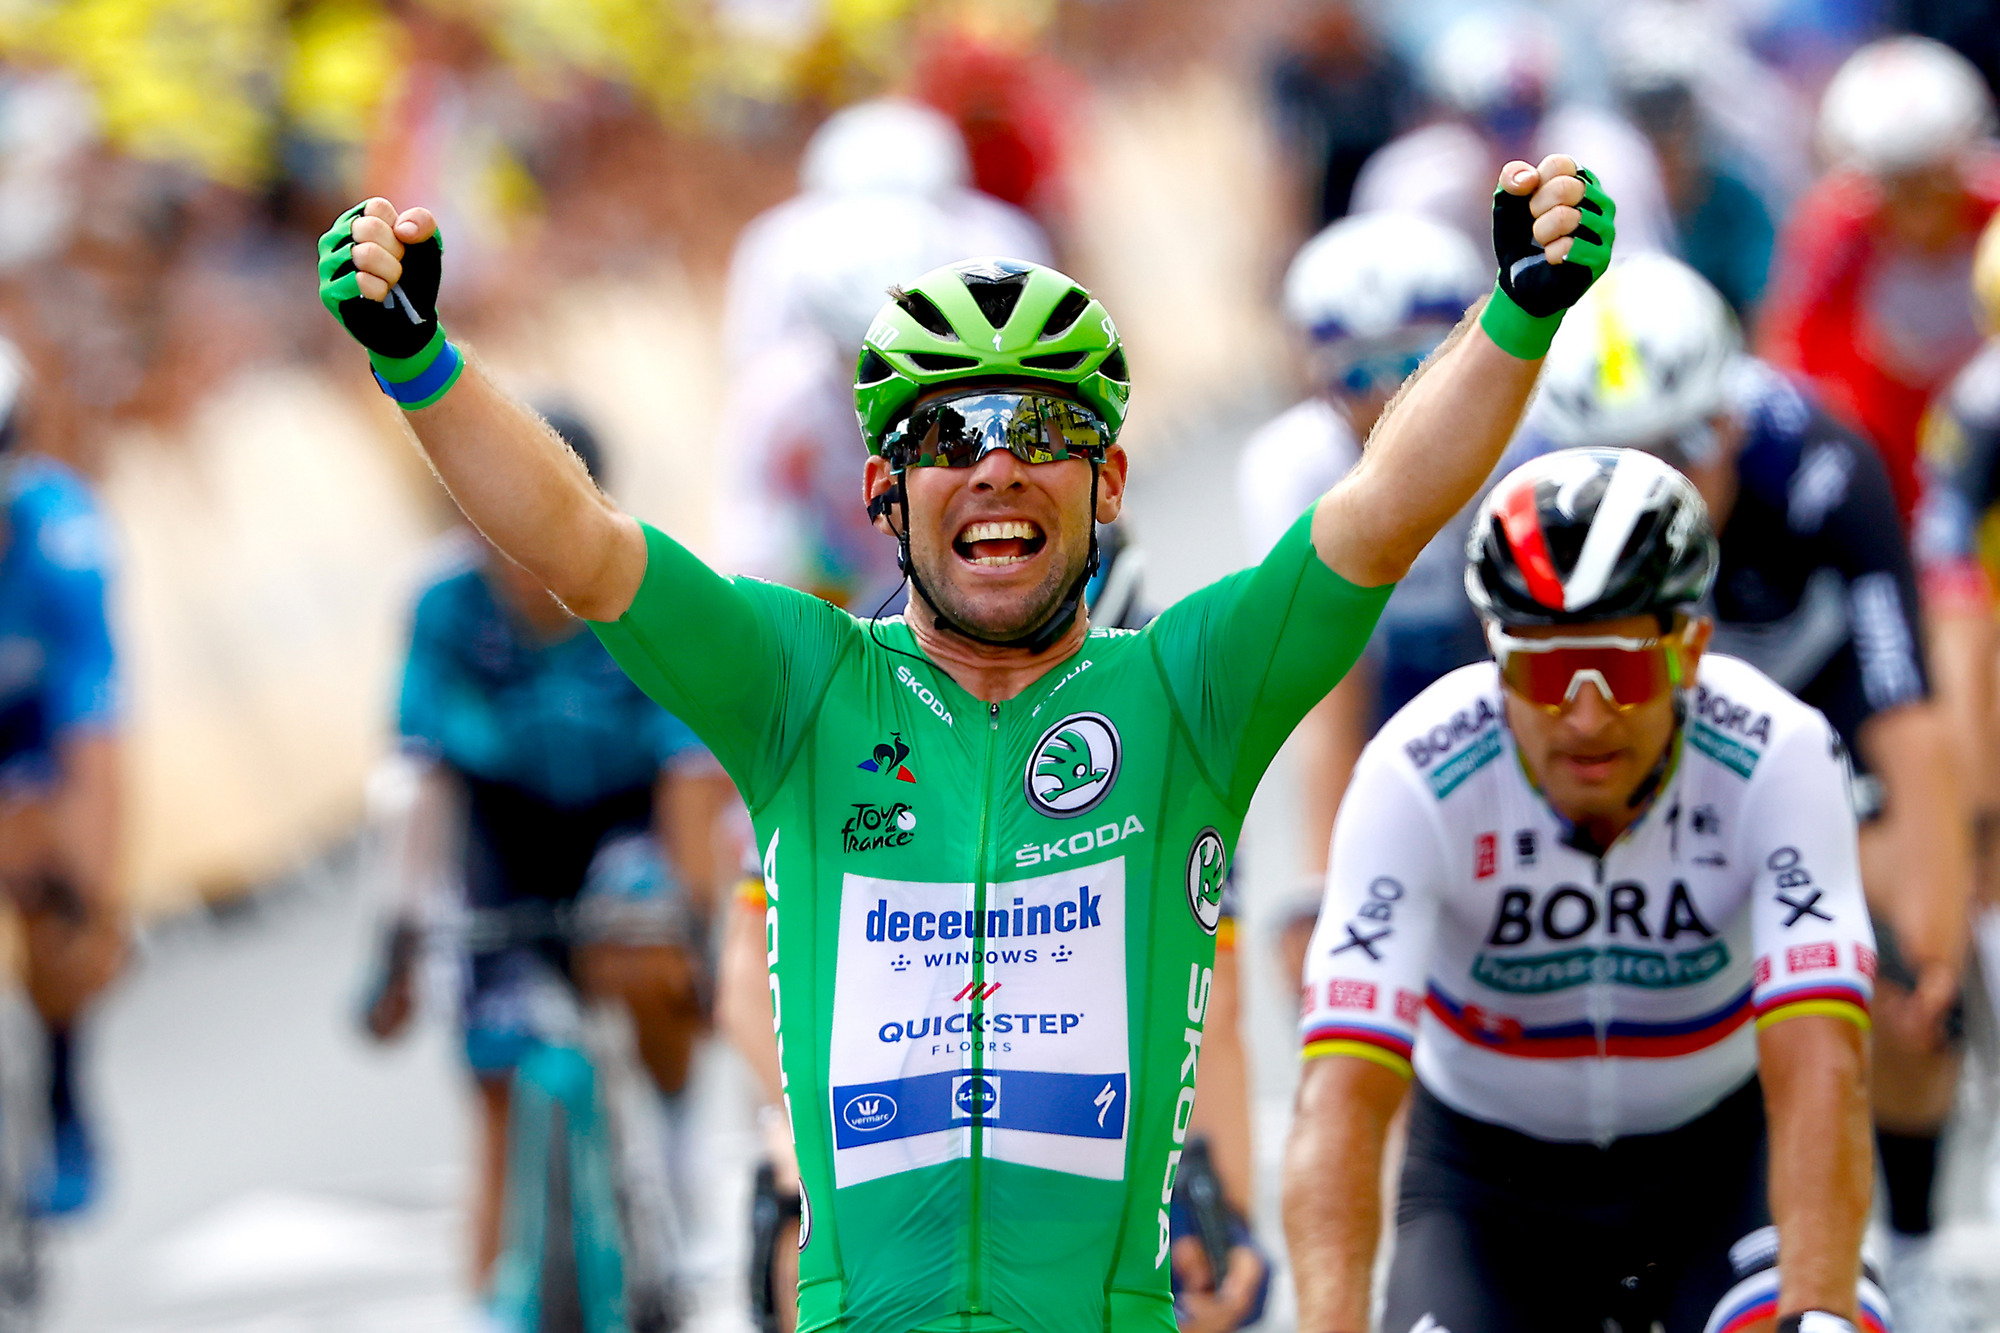 Tour de France 2021 - 108th Edition - 6th stage Tours - Chateauroux 160,4 km - 01/07/2021 - Mark Cavendish (GBR - Deceuninck - Quick-Step) - photo Luca Bettini/BettiniPhoto©2021